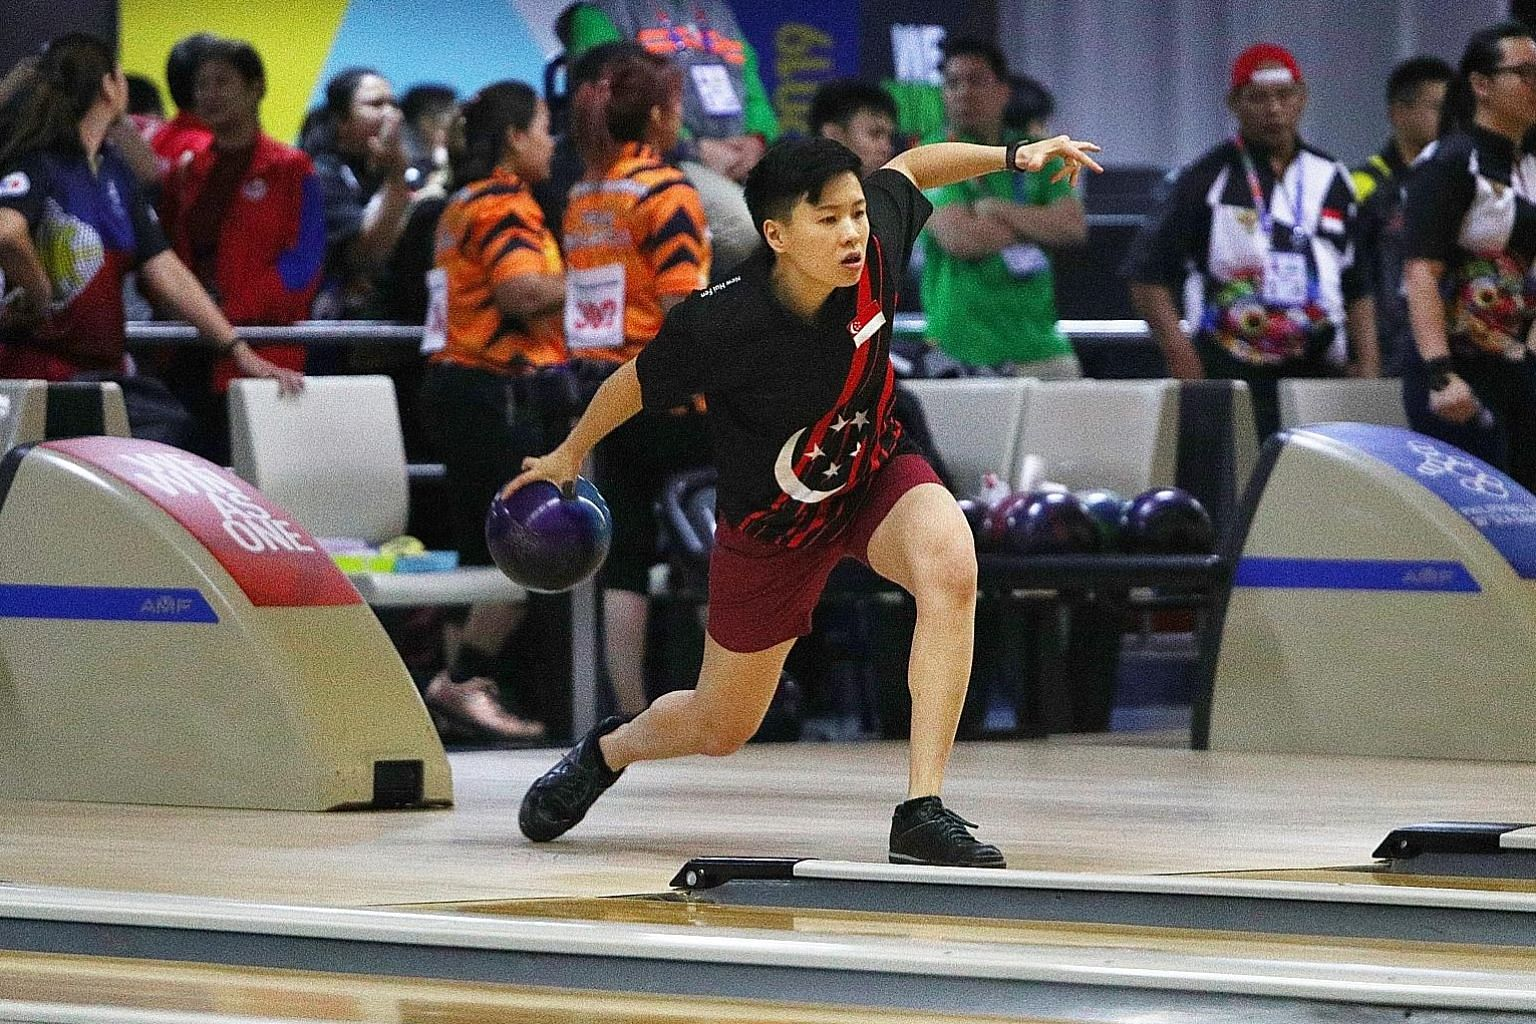 Singapore bowler New Hui Fen pulled away in the fifth game - winning it 235-176 - of the see-saw battle with silver medallist Tannya Roumimper. PHOTO: LIANHE ZAOBAO